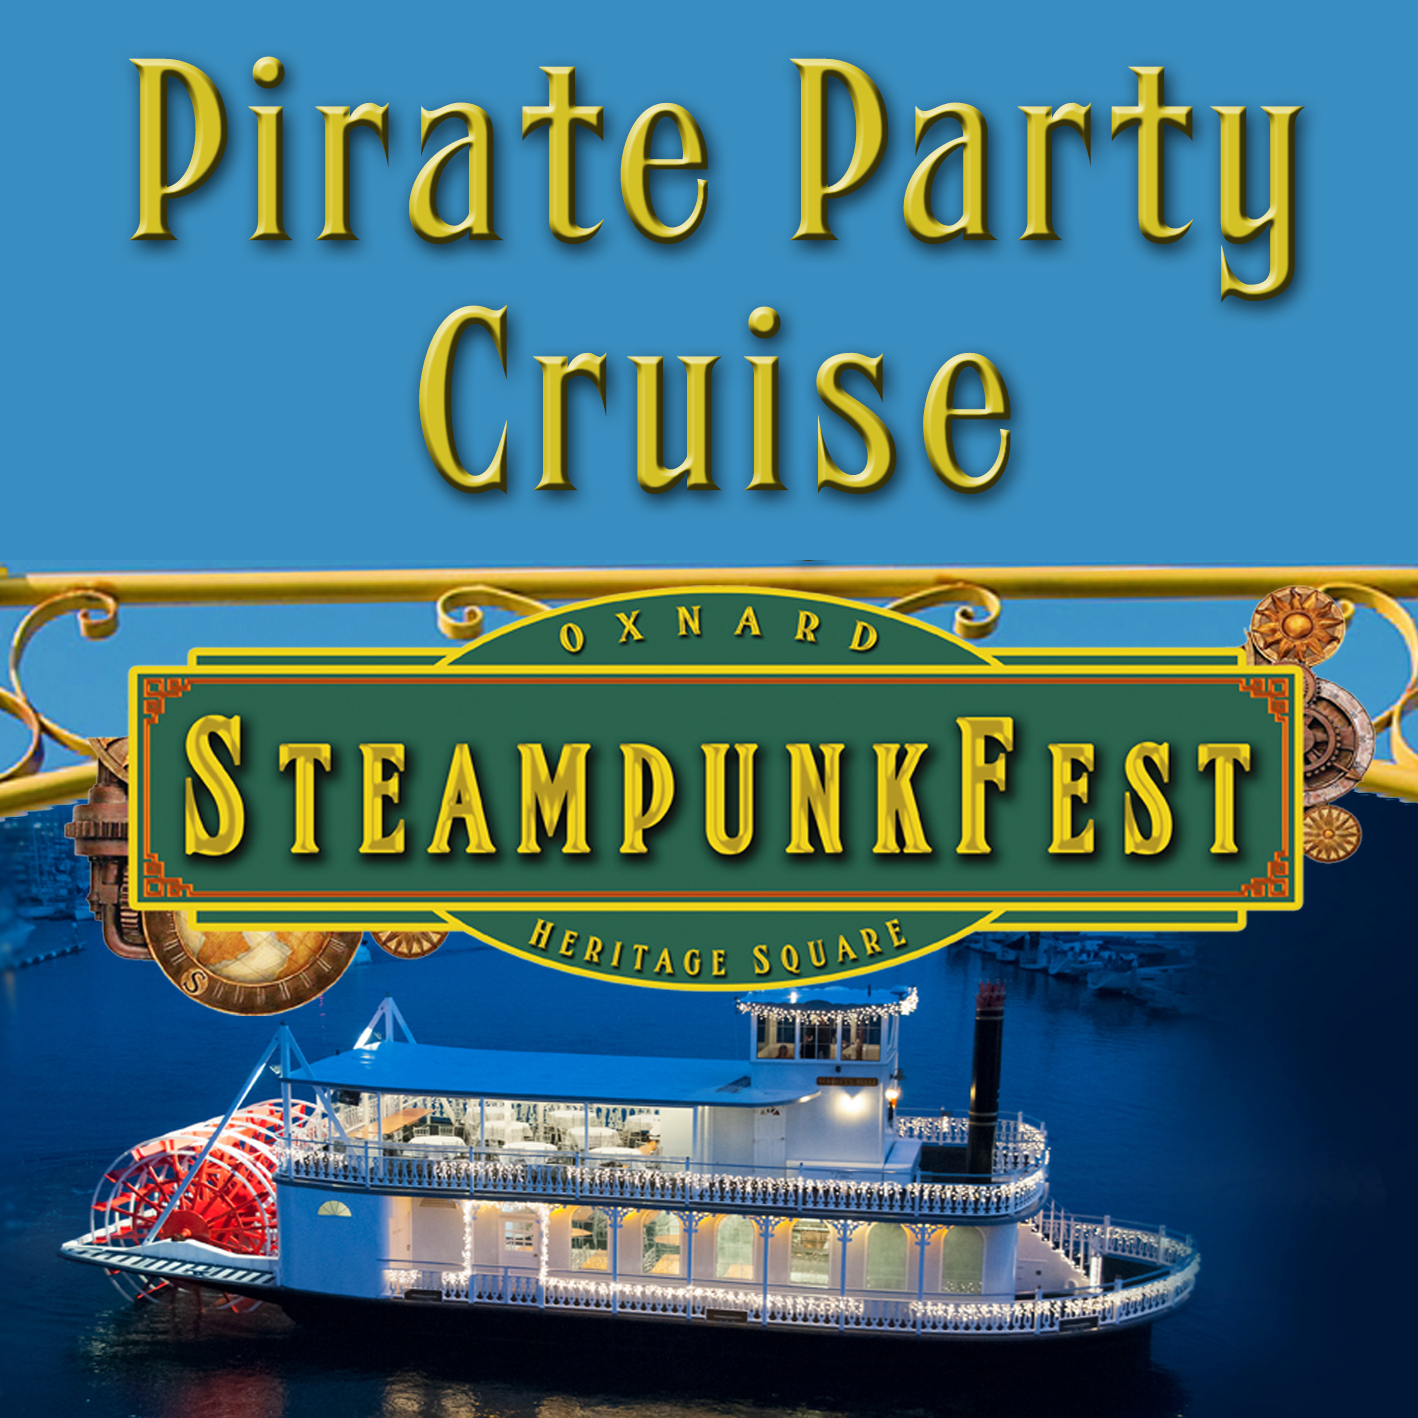 Steampunk Fest's Pirate Party Cruise